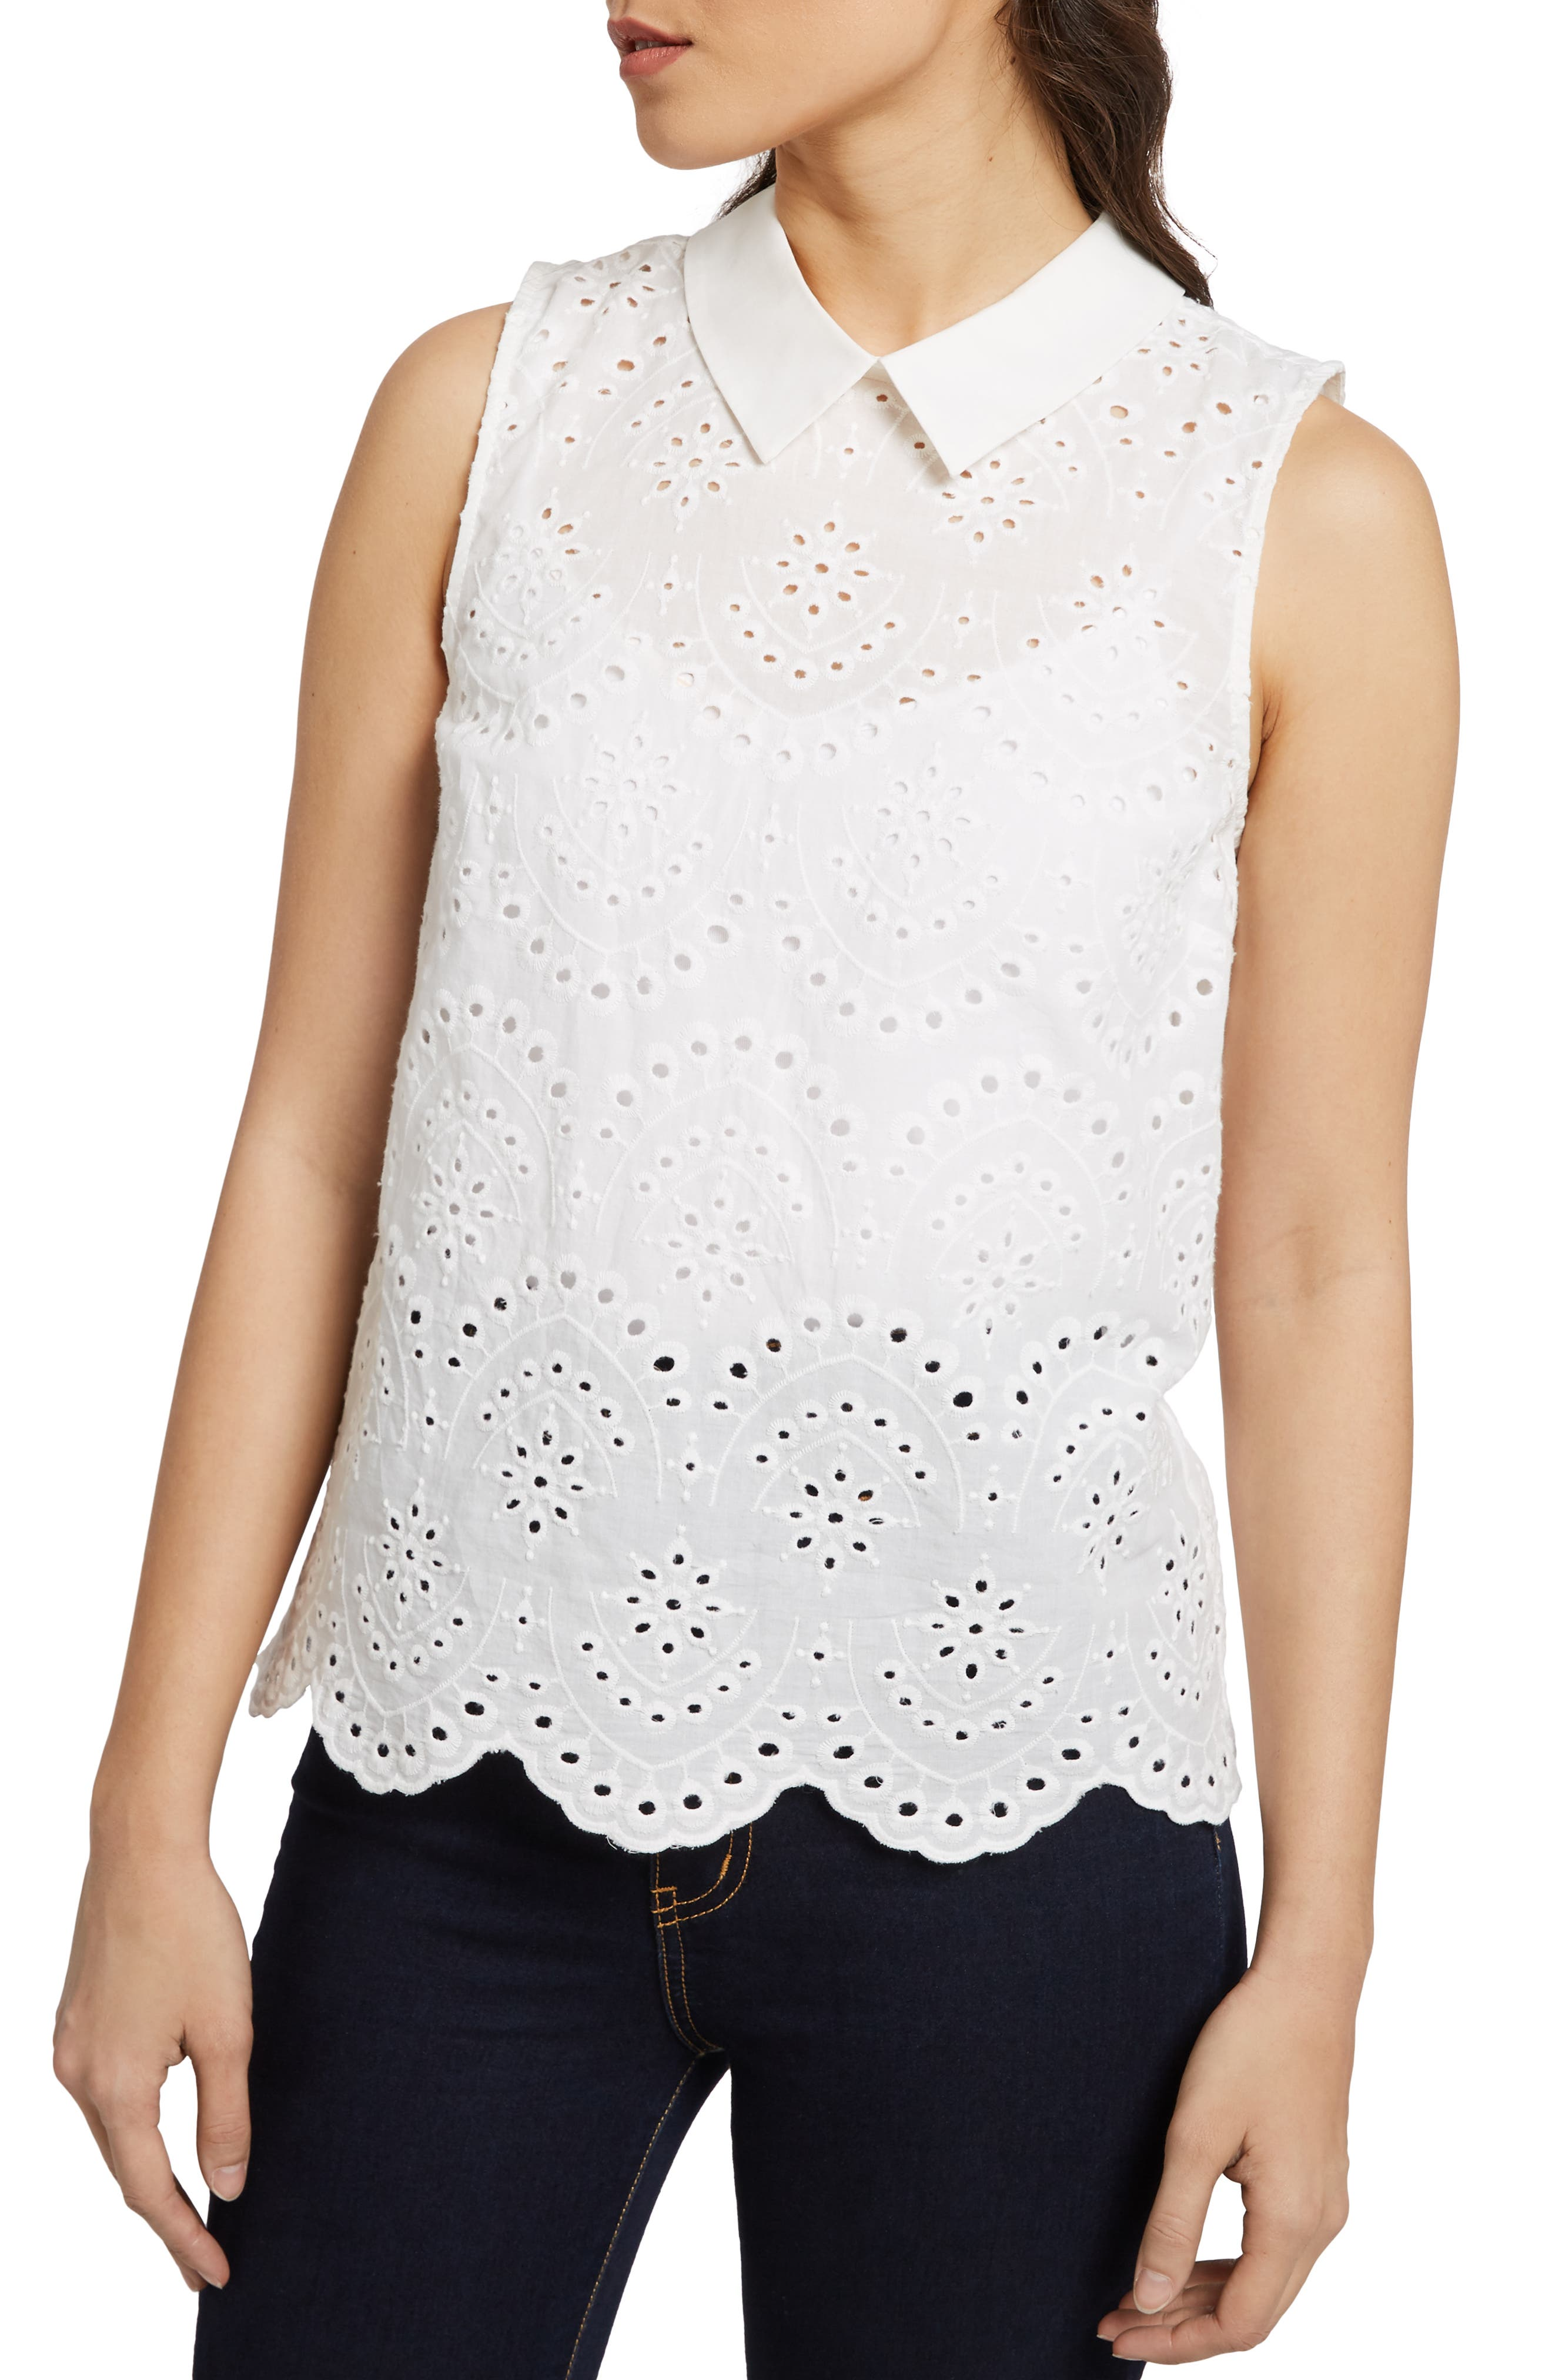 MODCLOTH, Eyelet in the Sun Top, Main thumbnail 1, color, WHITE